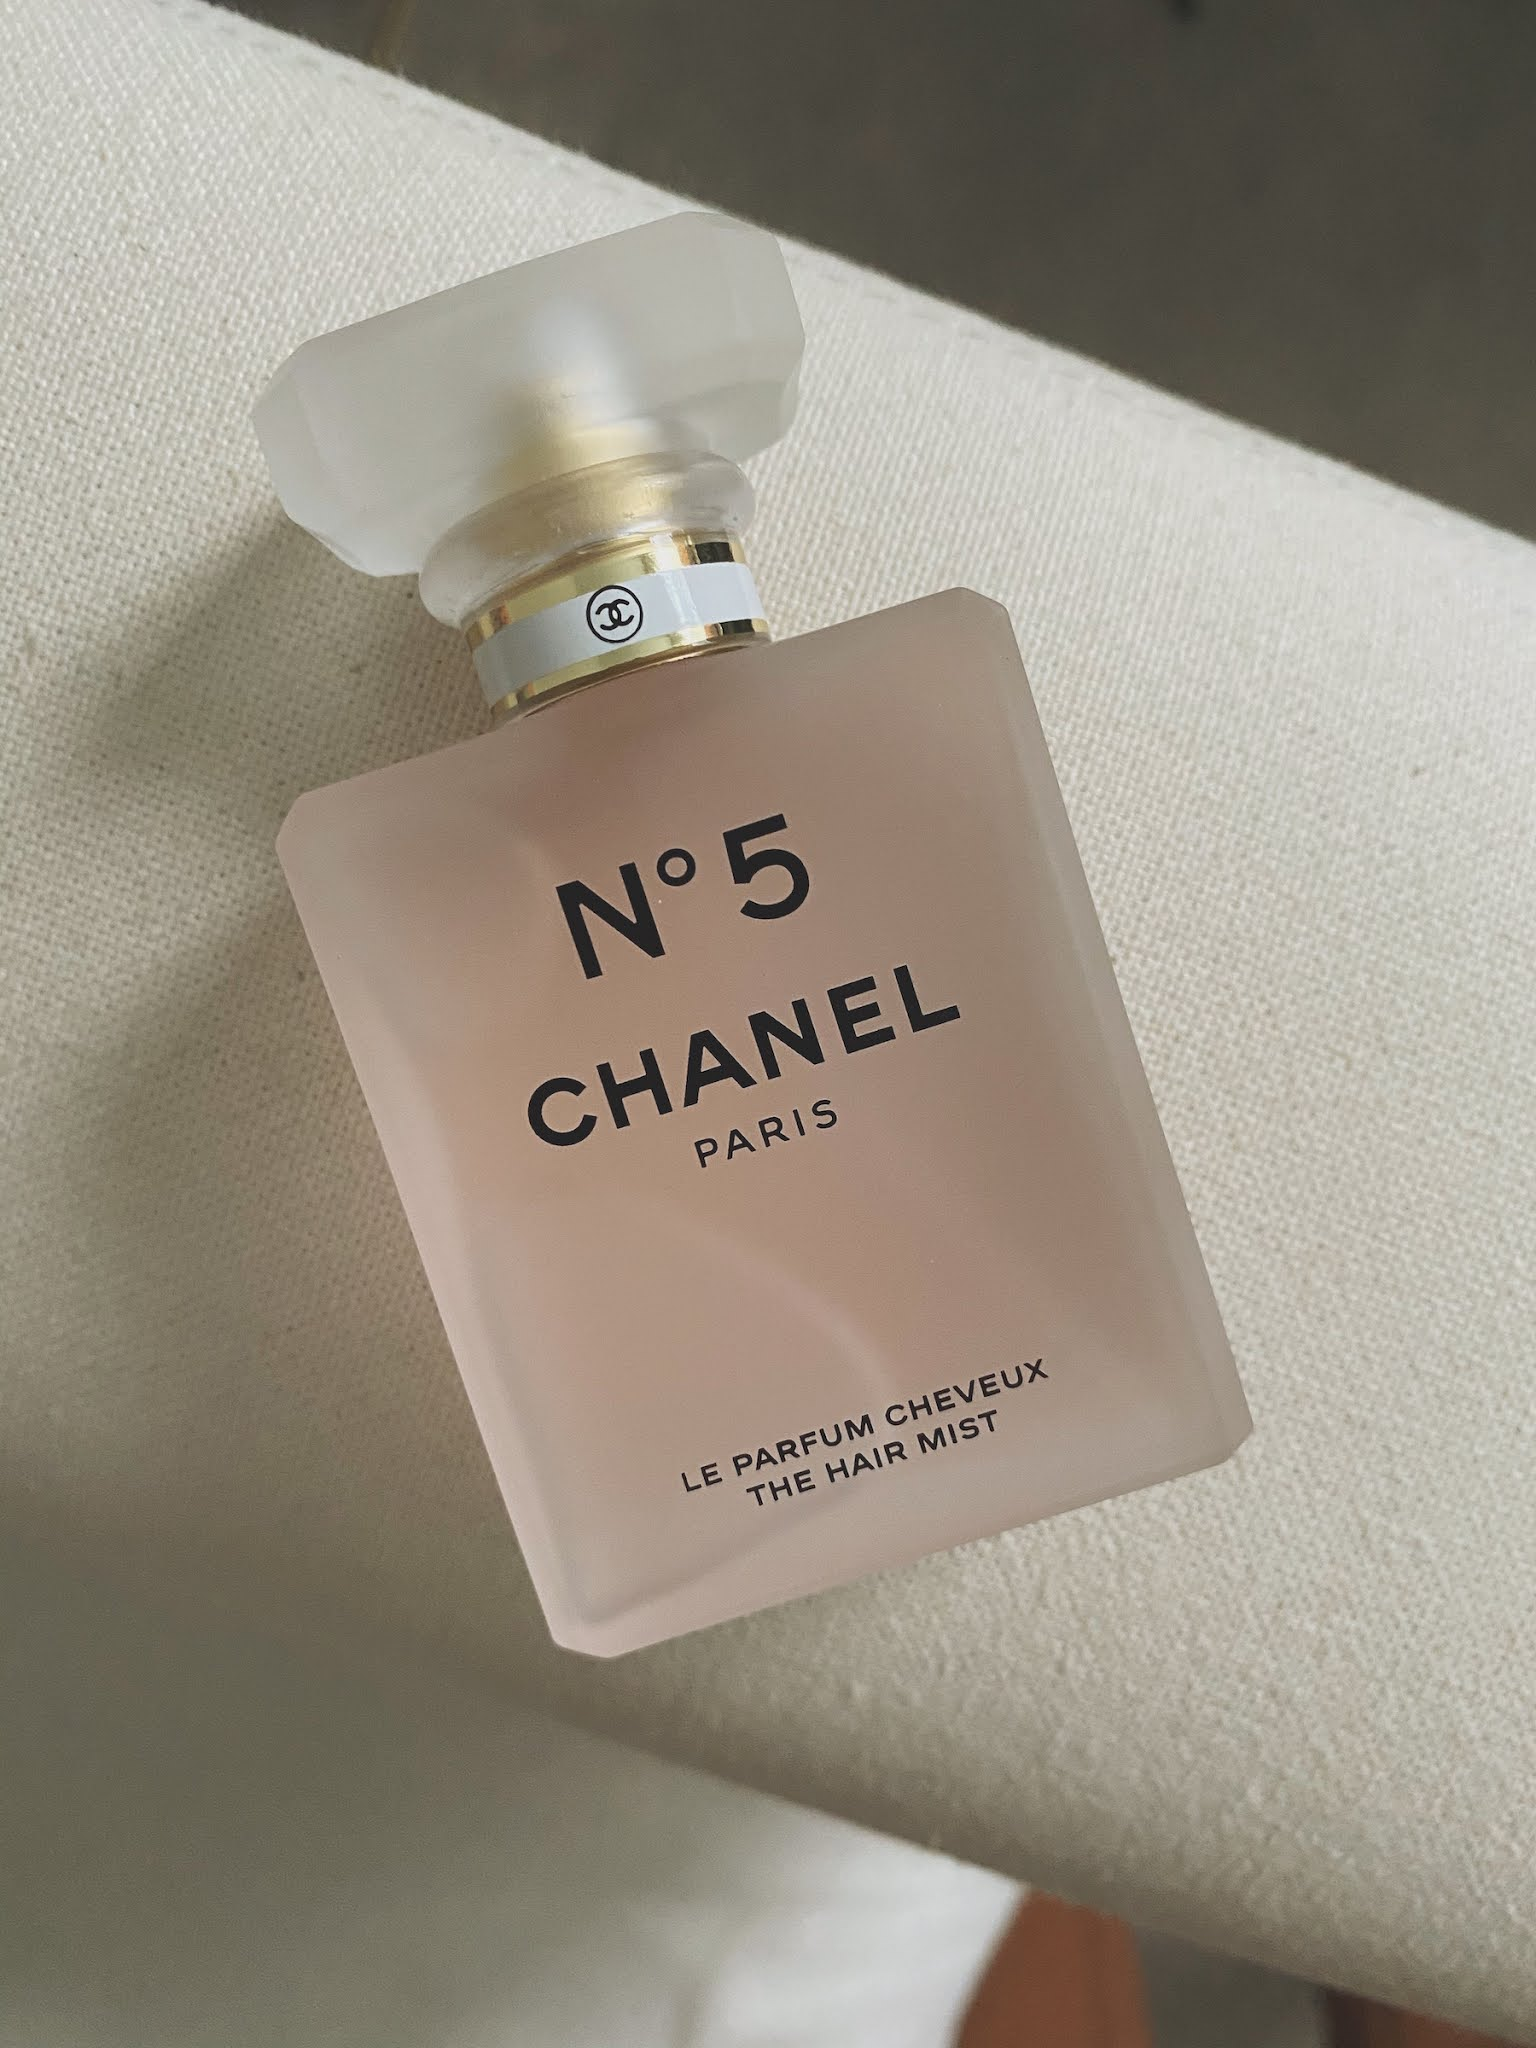 Chanel no 5 hair mist review